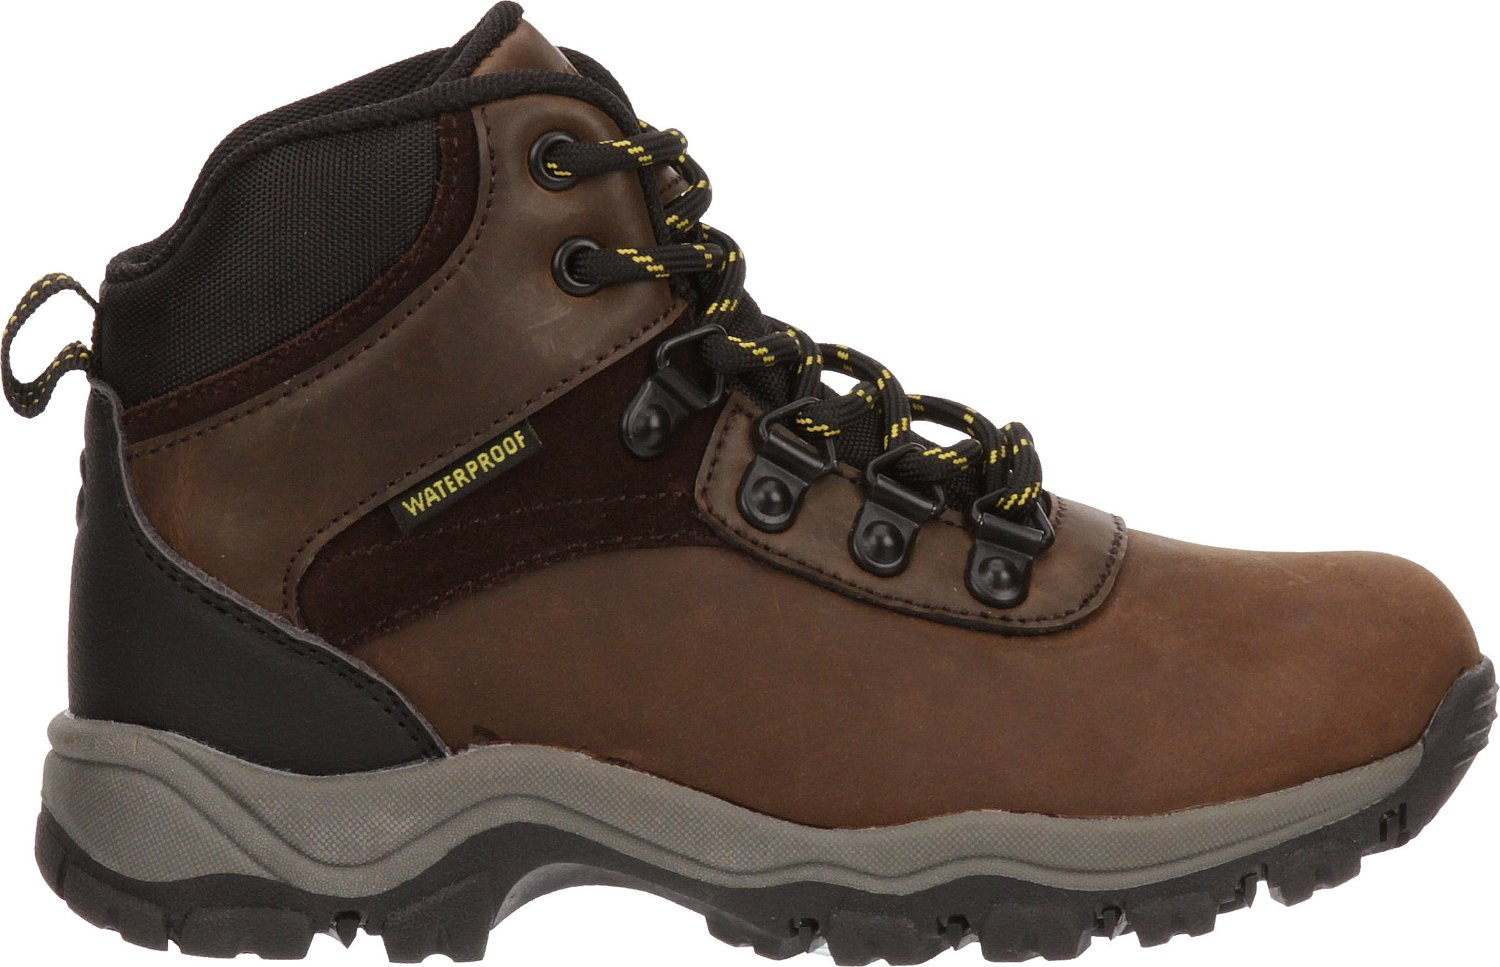 a6c55f157f5 Magellan Outdoors Kids' Argo PS/GS Hiking Boots